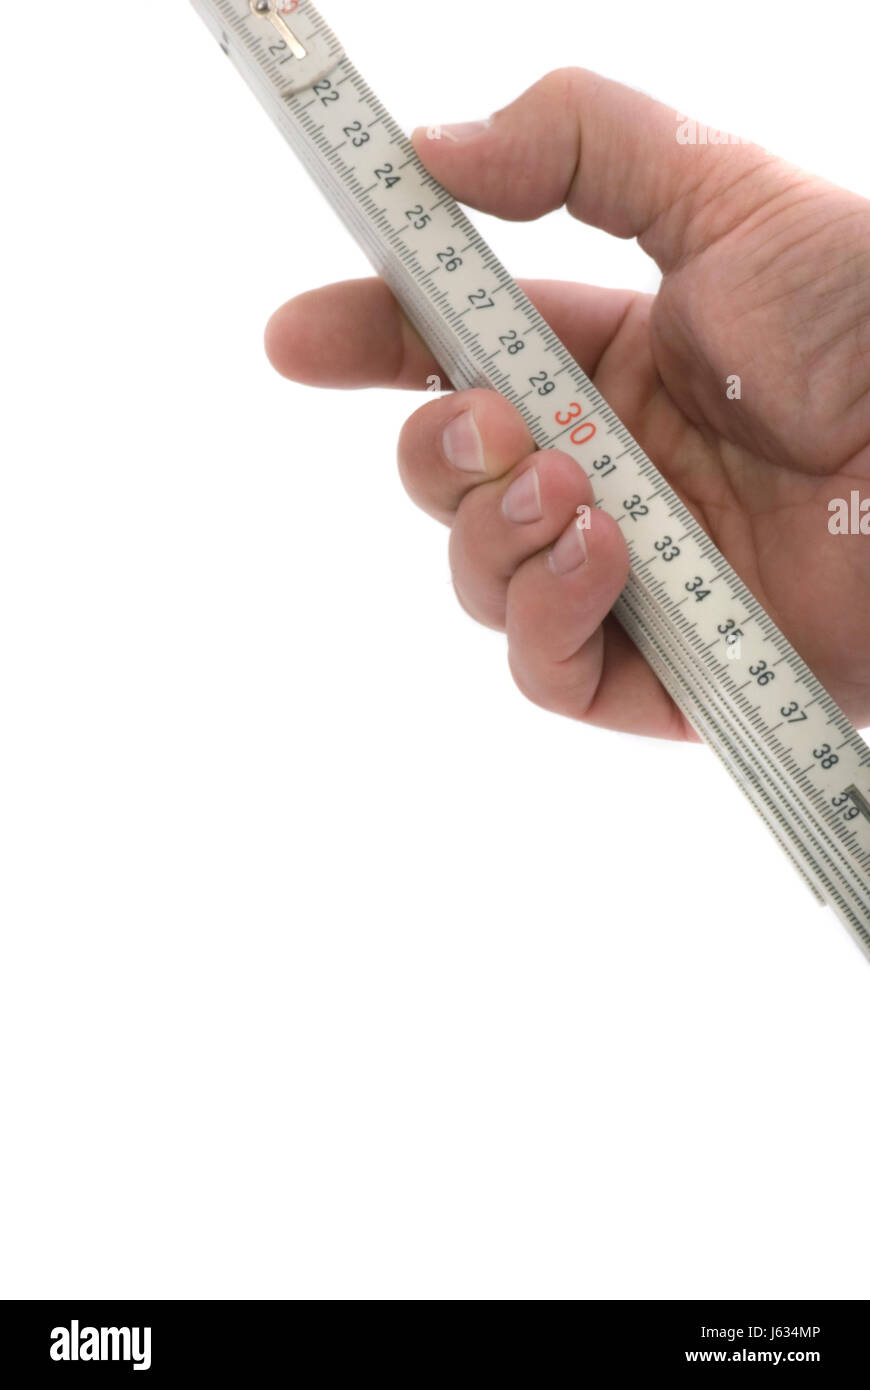 hand hold yardstick centimeter scale isolated optional symbolic advent measured - Stock Image